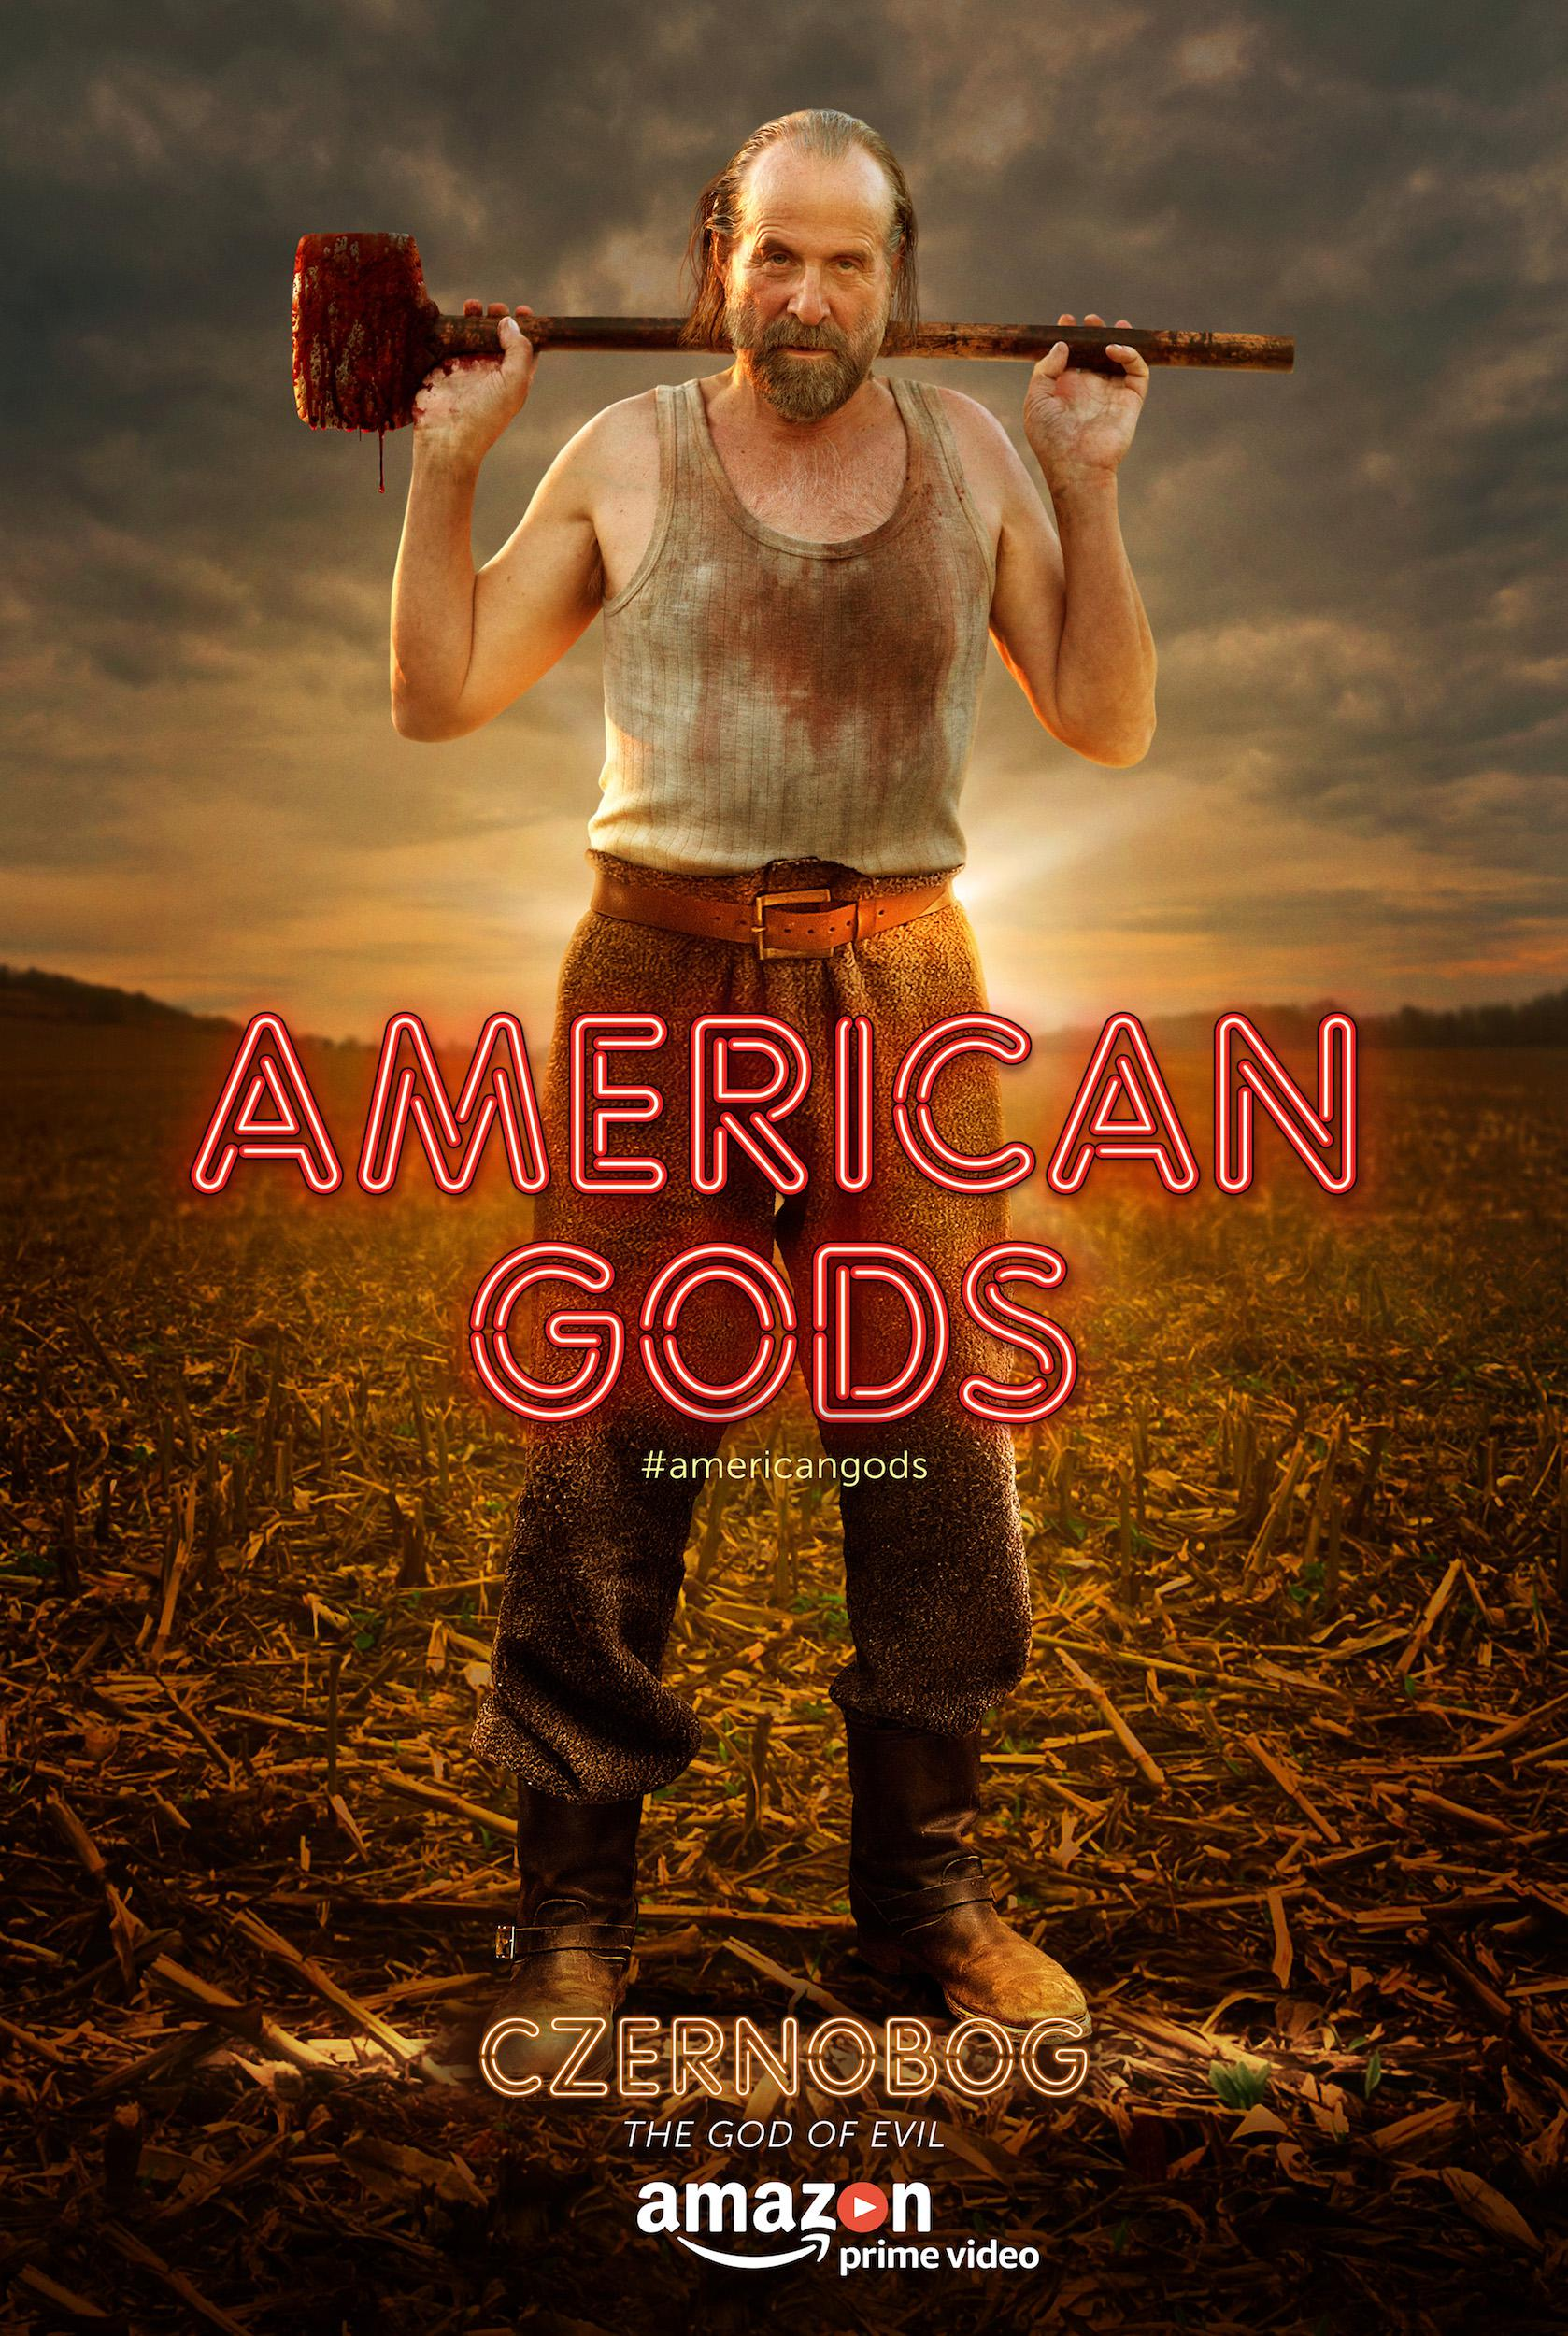 American Gods - Series - Peter Stormare as Czernobog - the god of evil